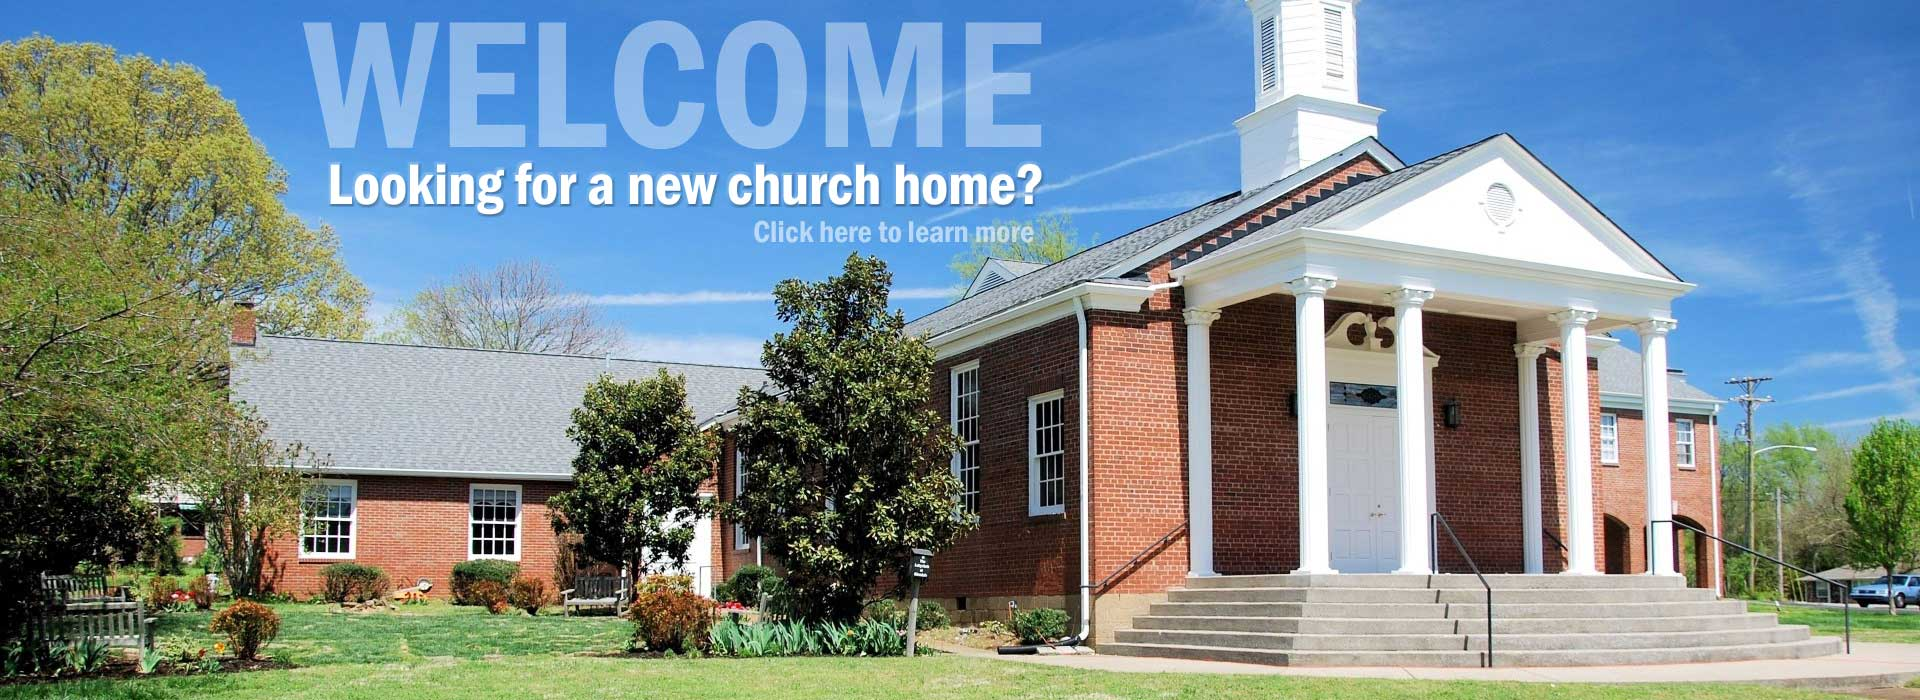 Glendale United Methodist Church About Us Welcome